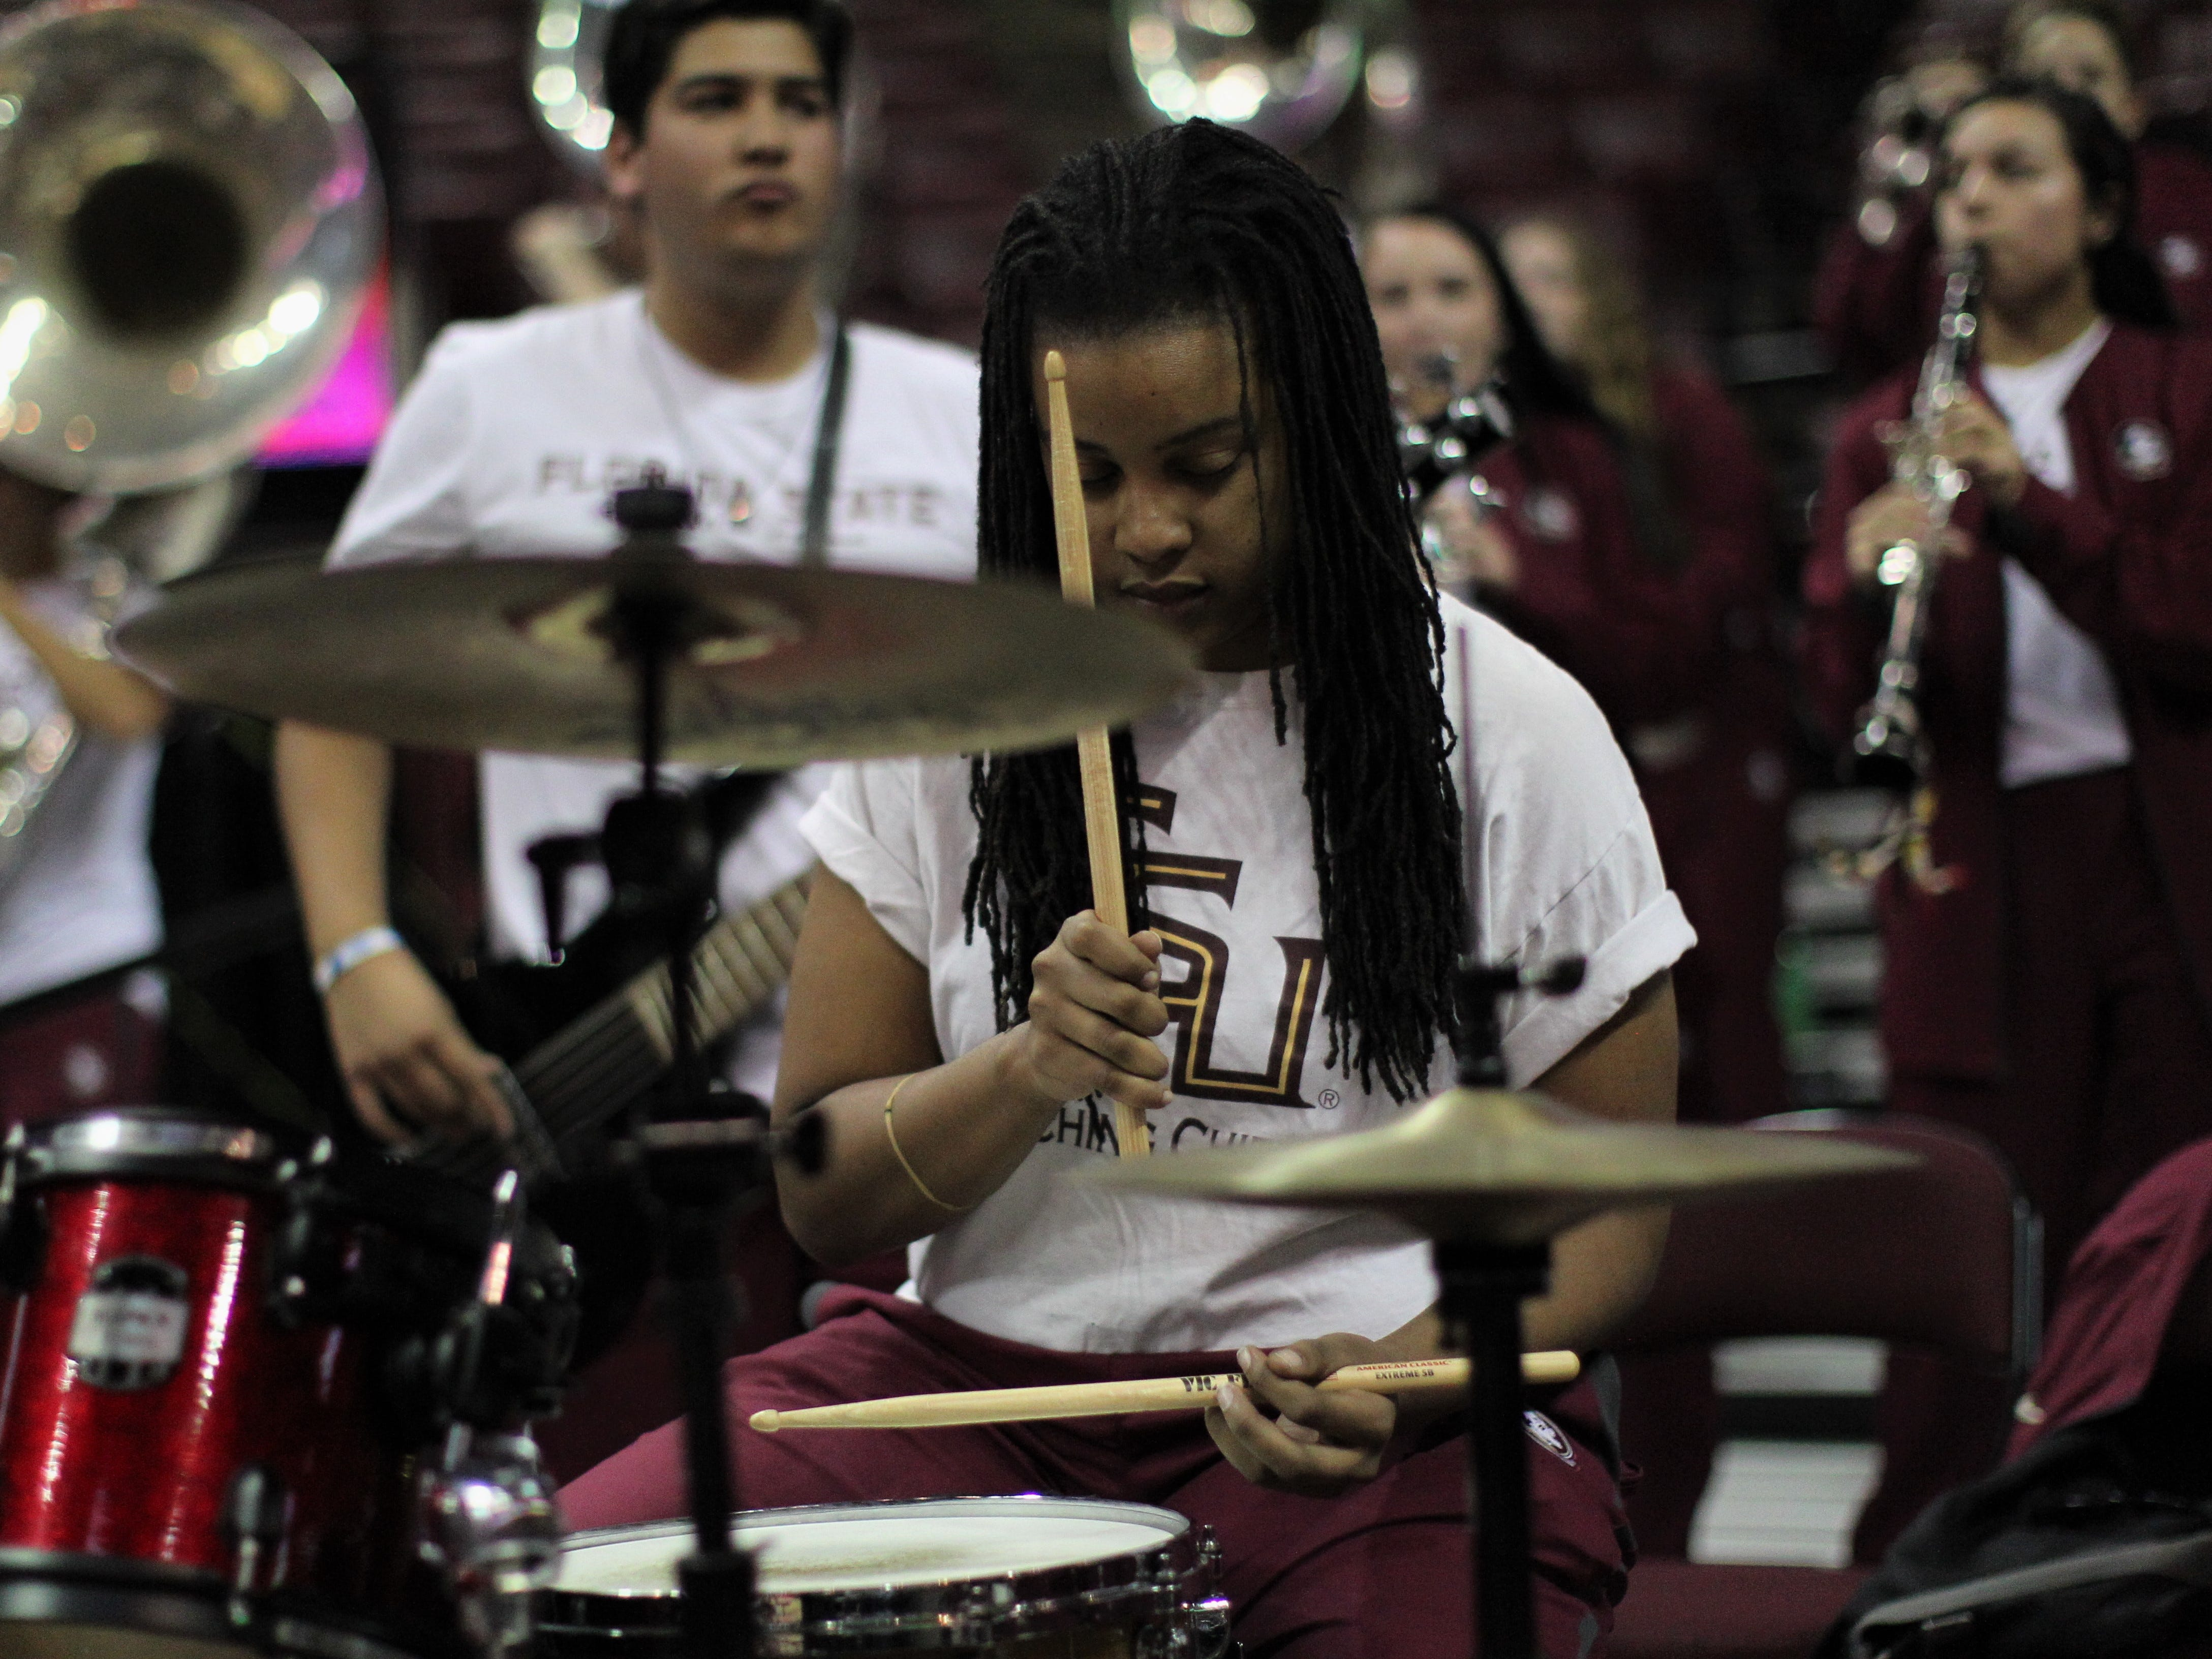 The FSU band plays during the first half of the Seminoles' women's basketball game against Florida at the Tucker Civic Center on Nov. 11, 2018.